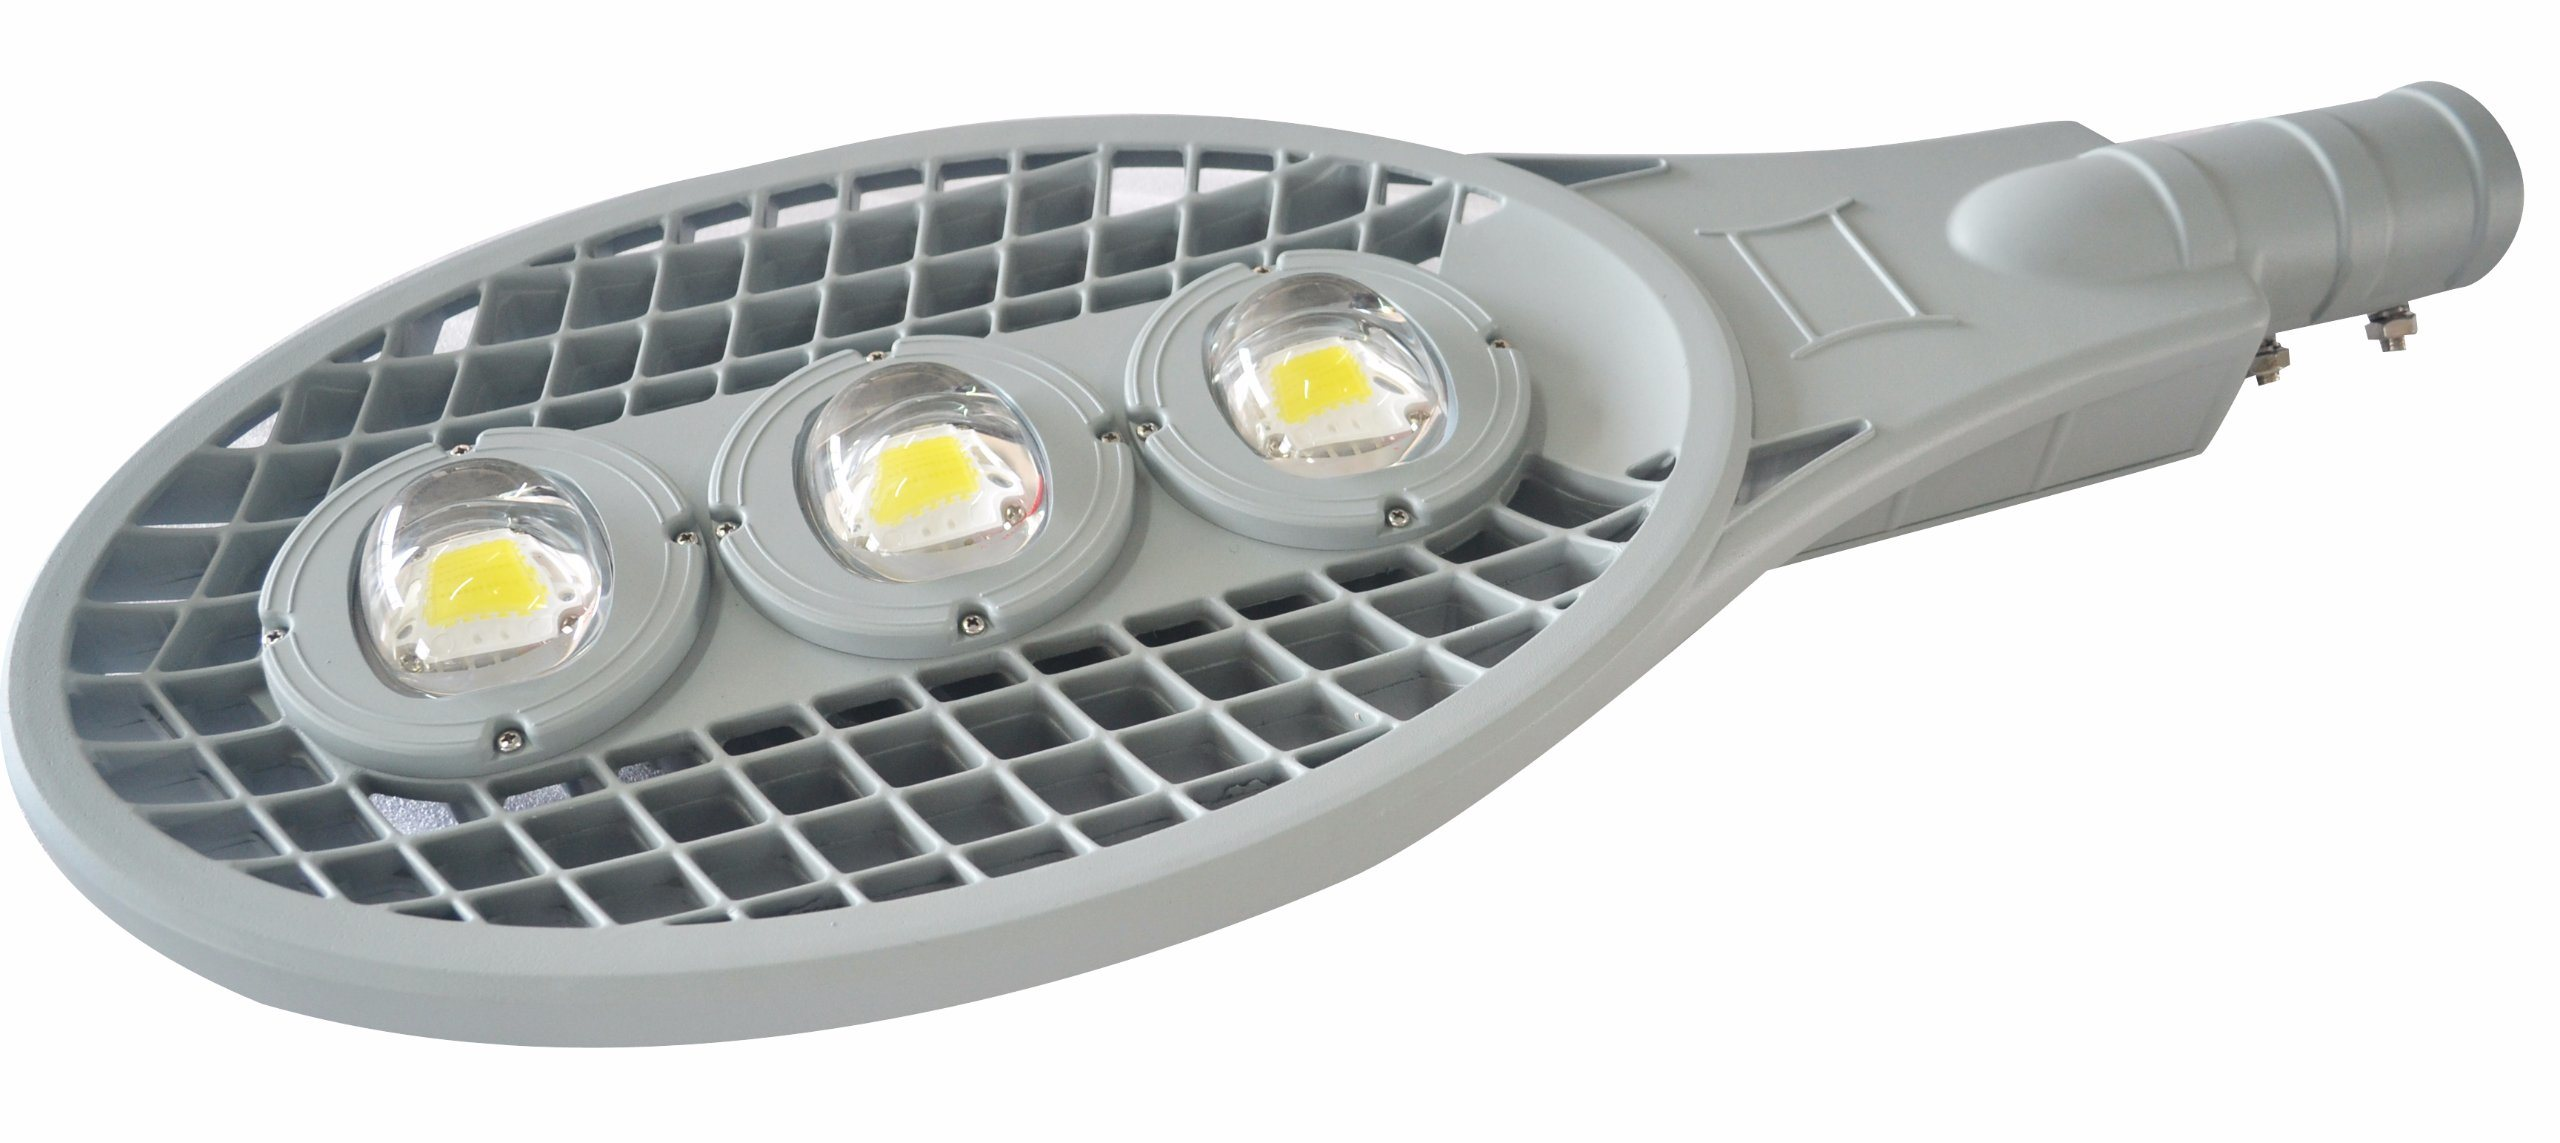 New Design Good Price 150W LED Street Light Price List